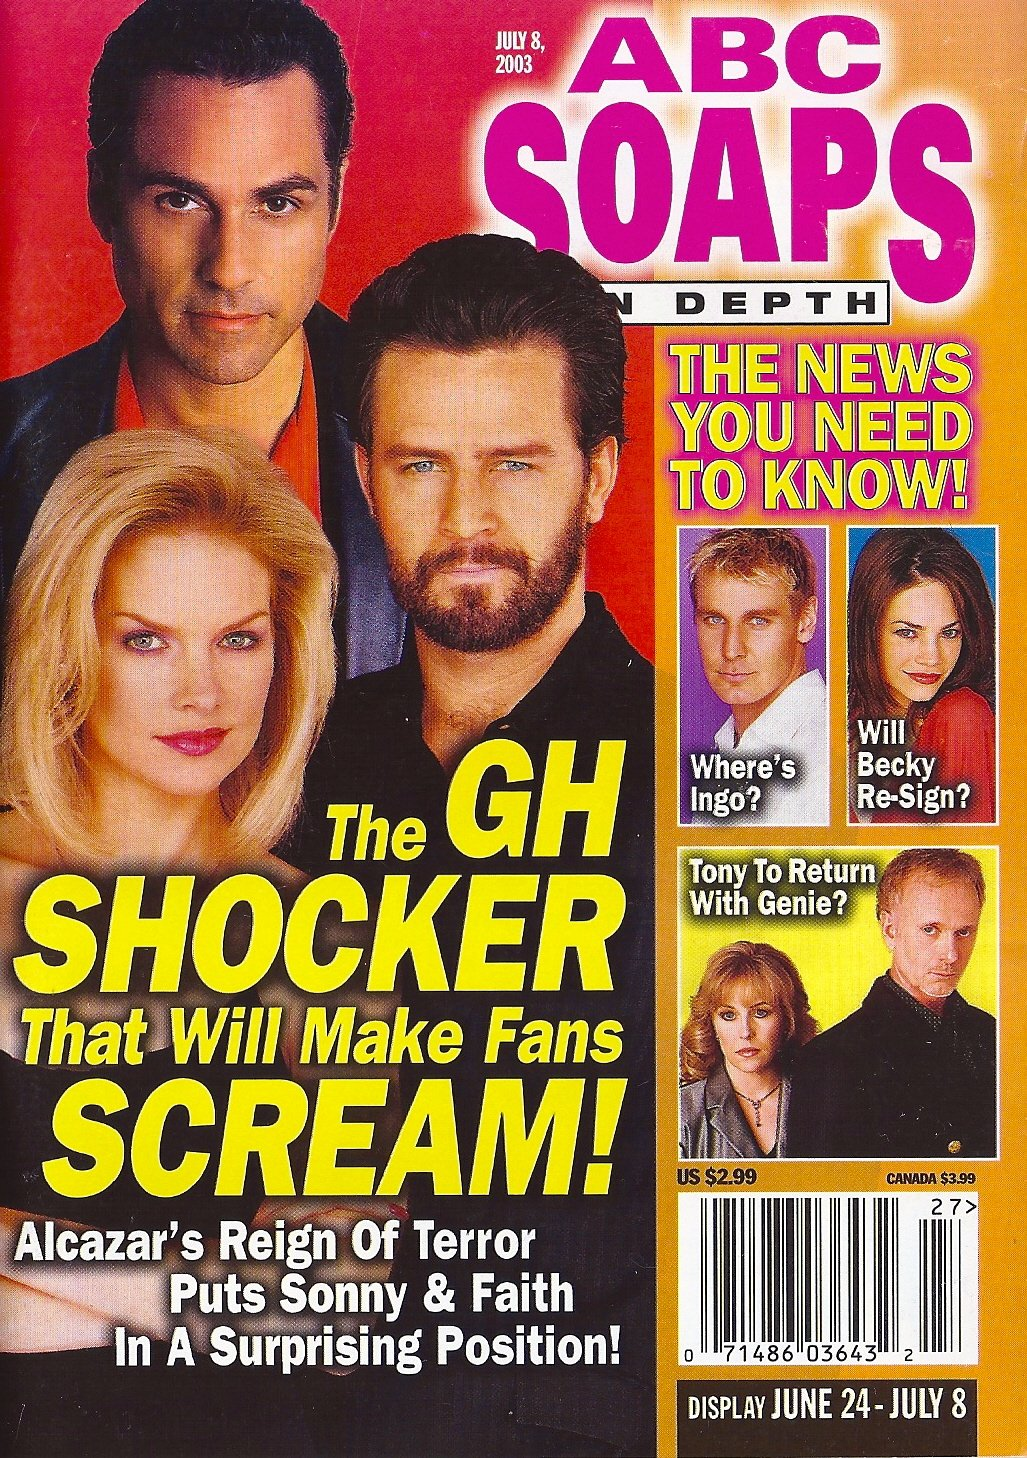 Maurice Benard Ted King Cynthia Preston General Hospital Geoffrey Wigdor Interview Andrew St John Matt Hunter July 8 2003 Abc Soap Sin Depth Magazine Soap Opera Heinrich Bauer Publishing L P Amazon Com Books